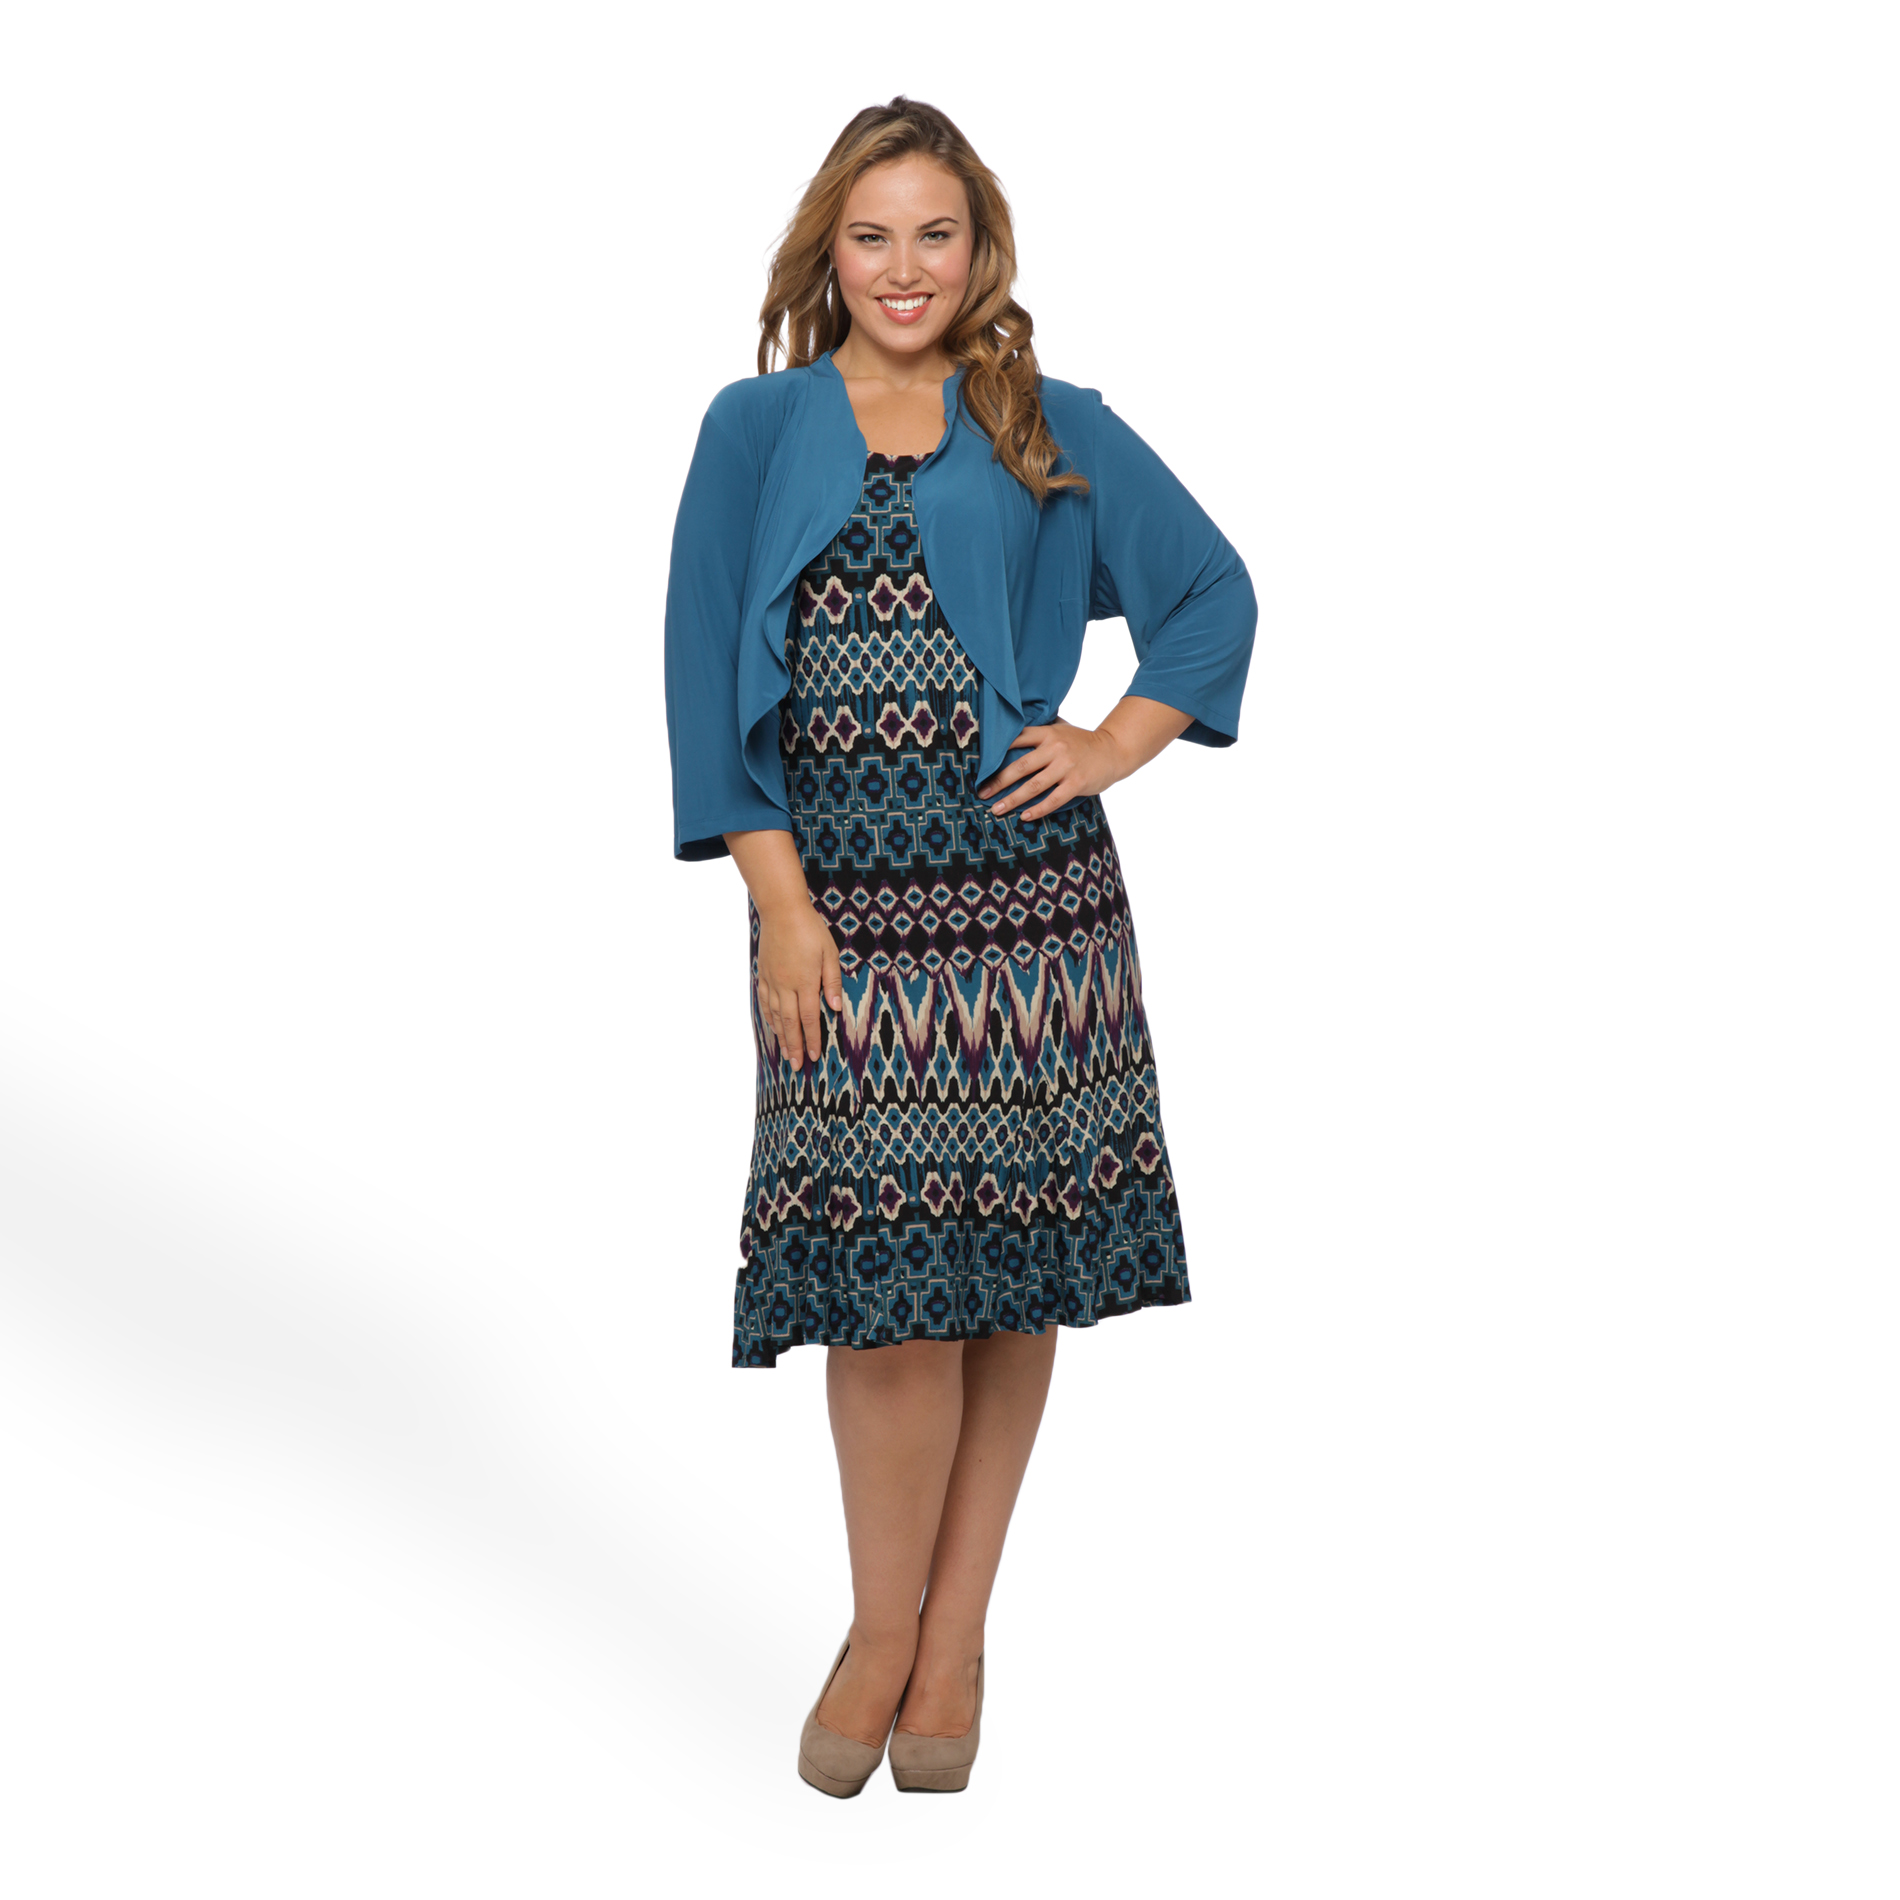 Danny & Nicole Women's Plus Jacket Dress - Abstract Print at Sears.com